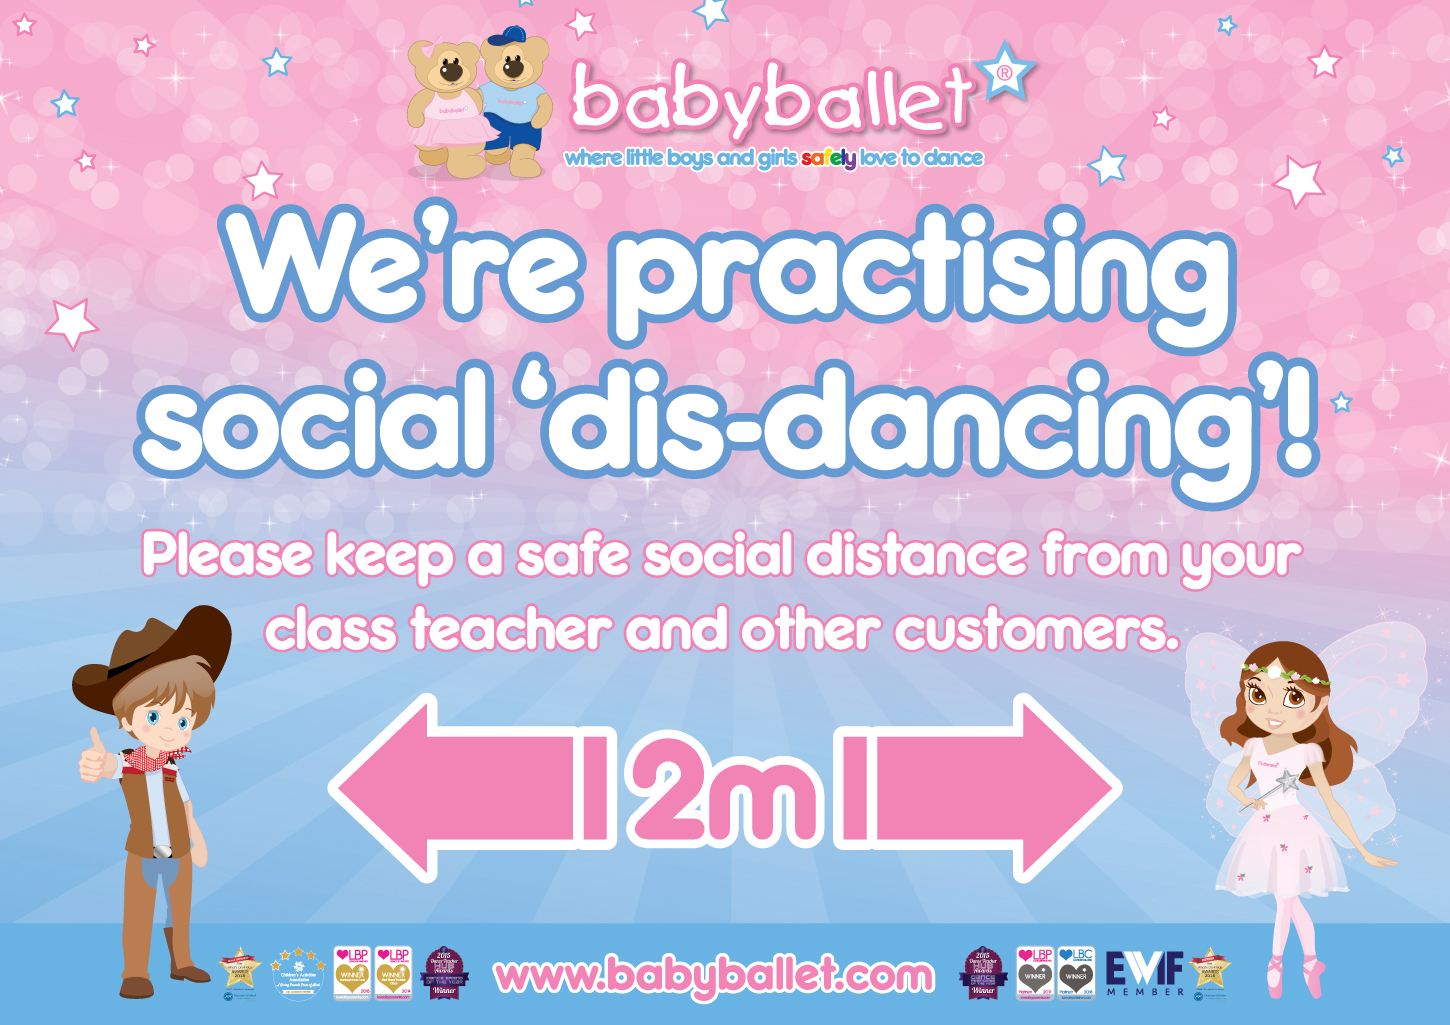 babyballet are practising social dis-dancing in our classes